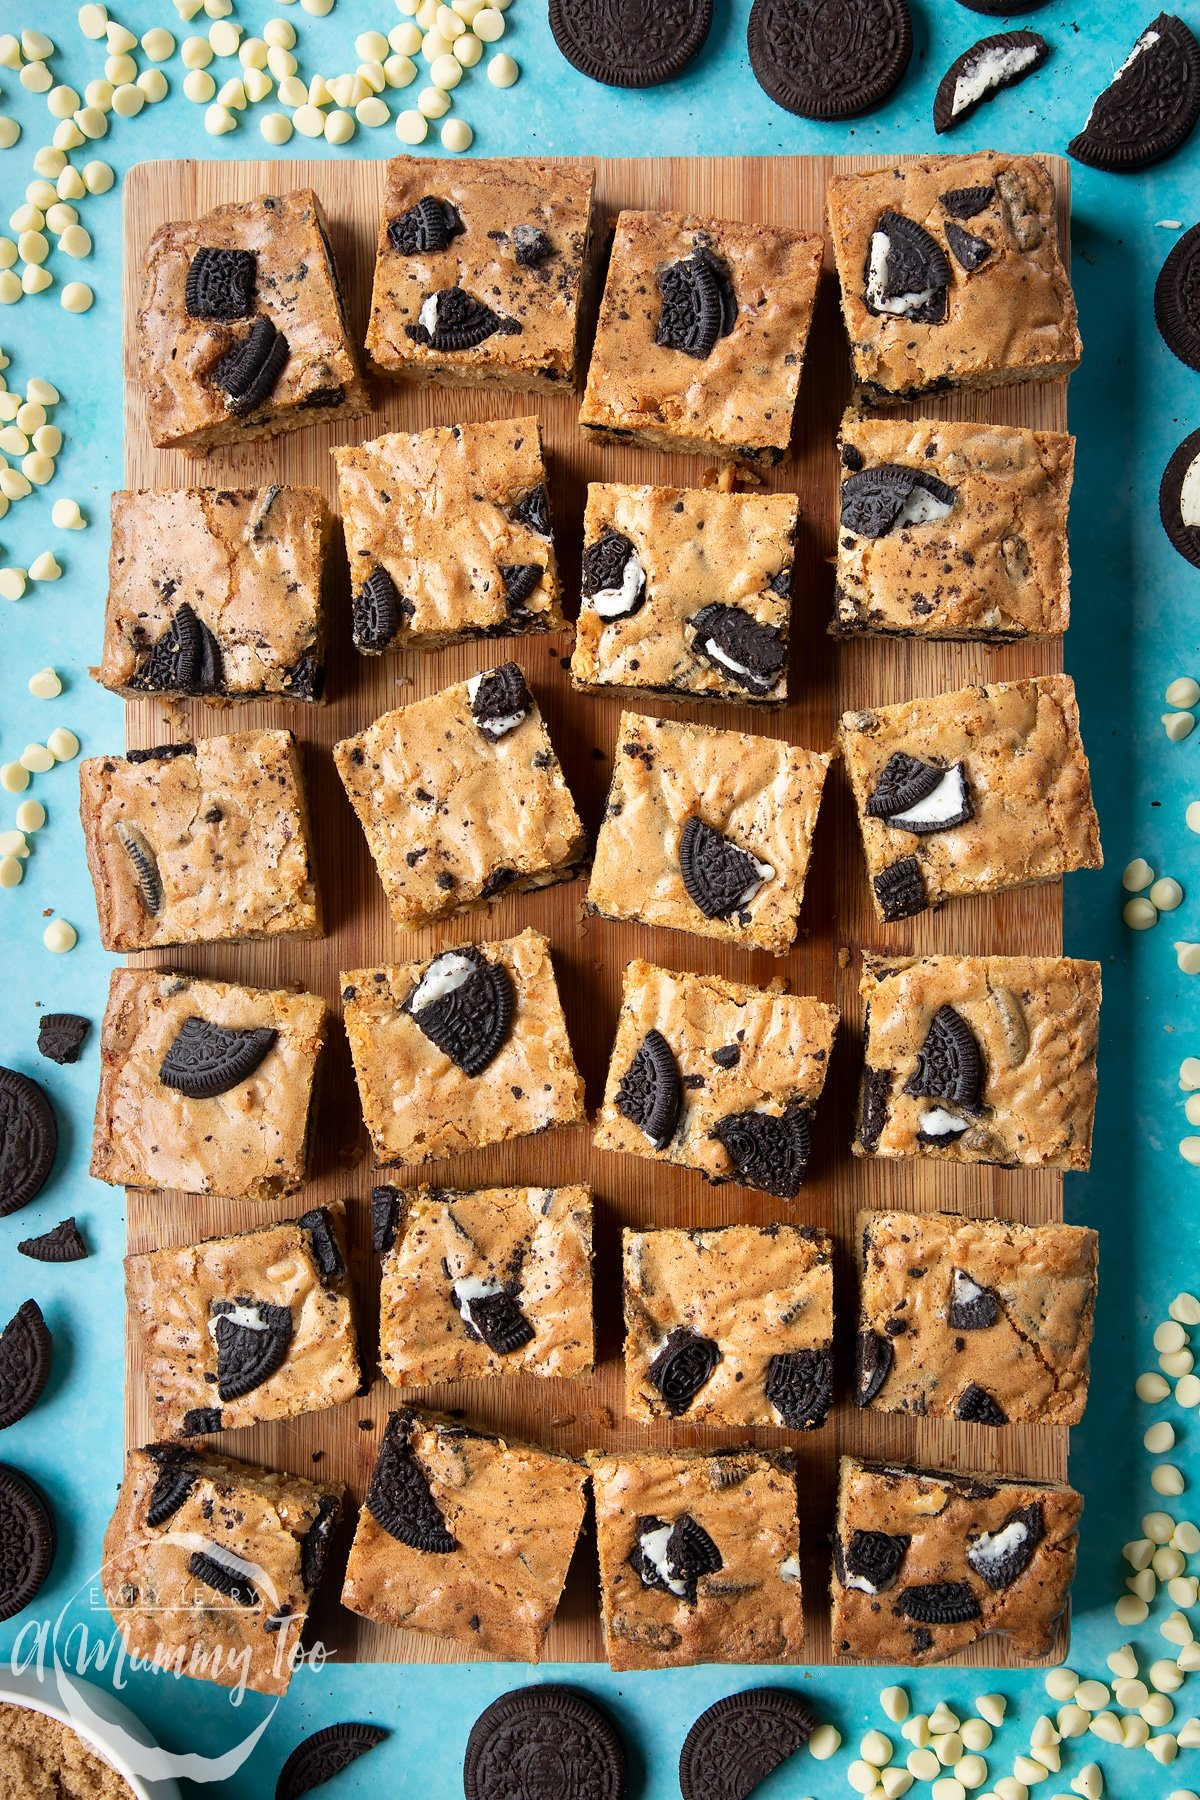 Overhead shot of square cut oreo blondies on a wooden board